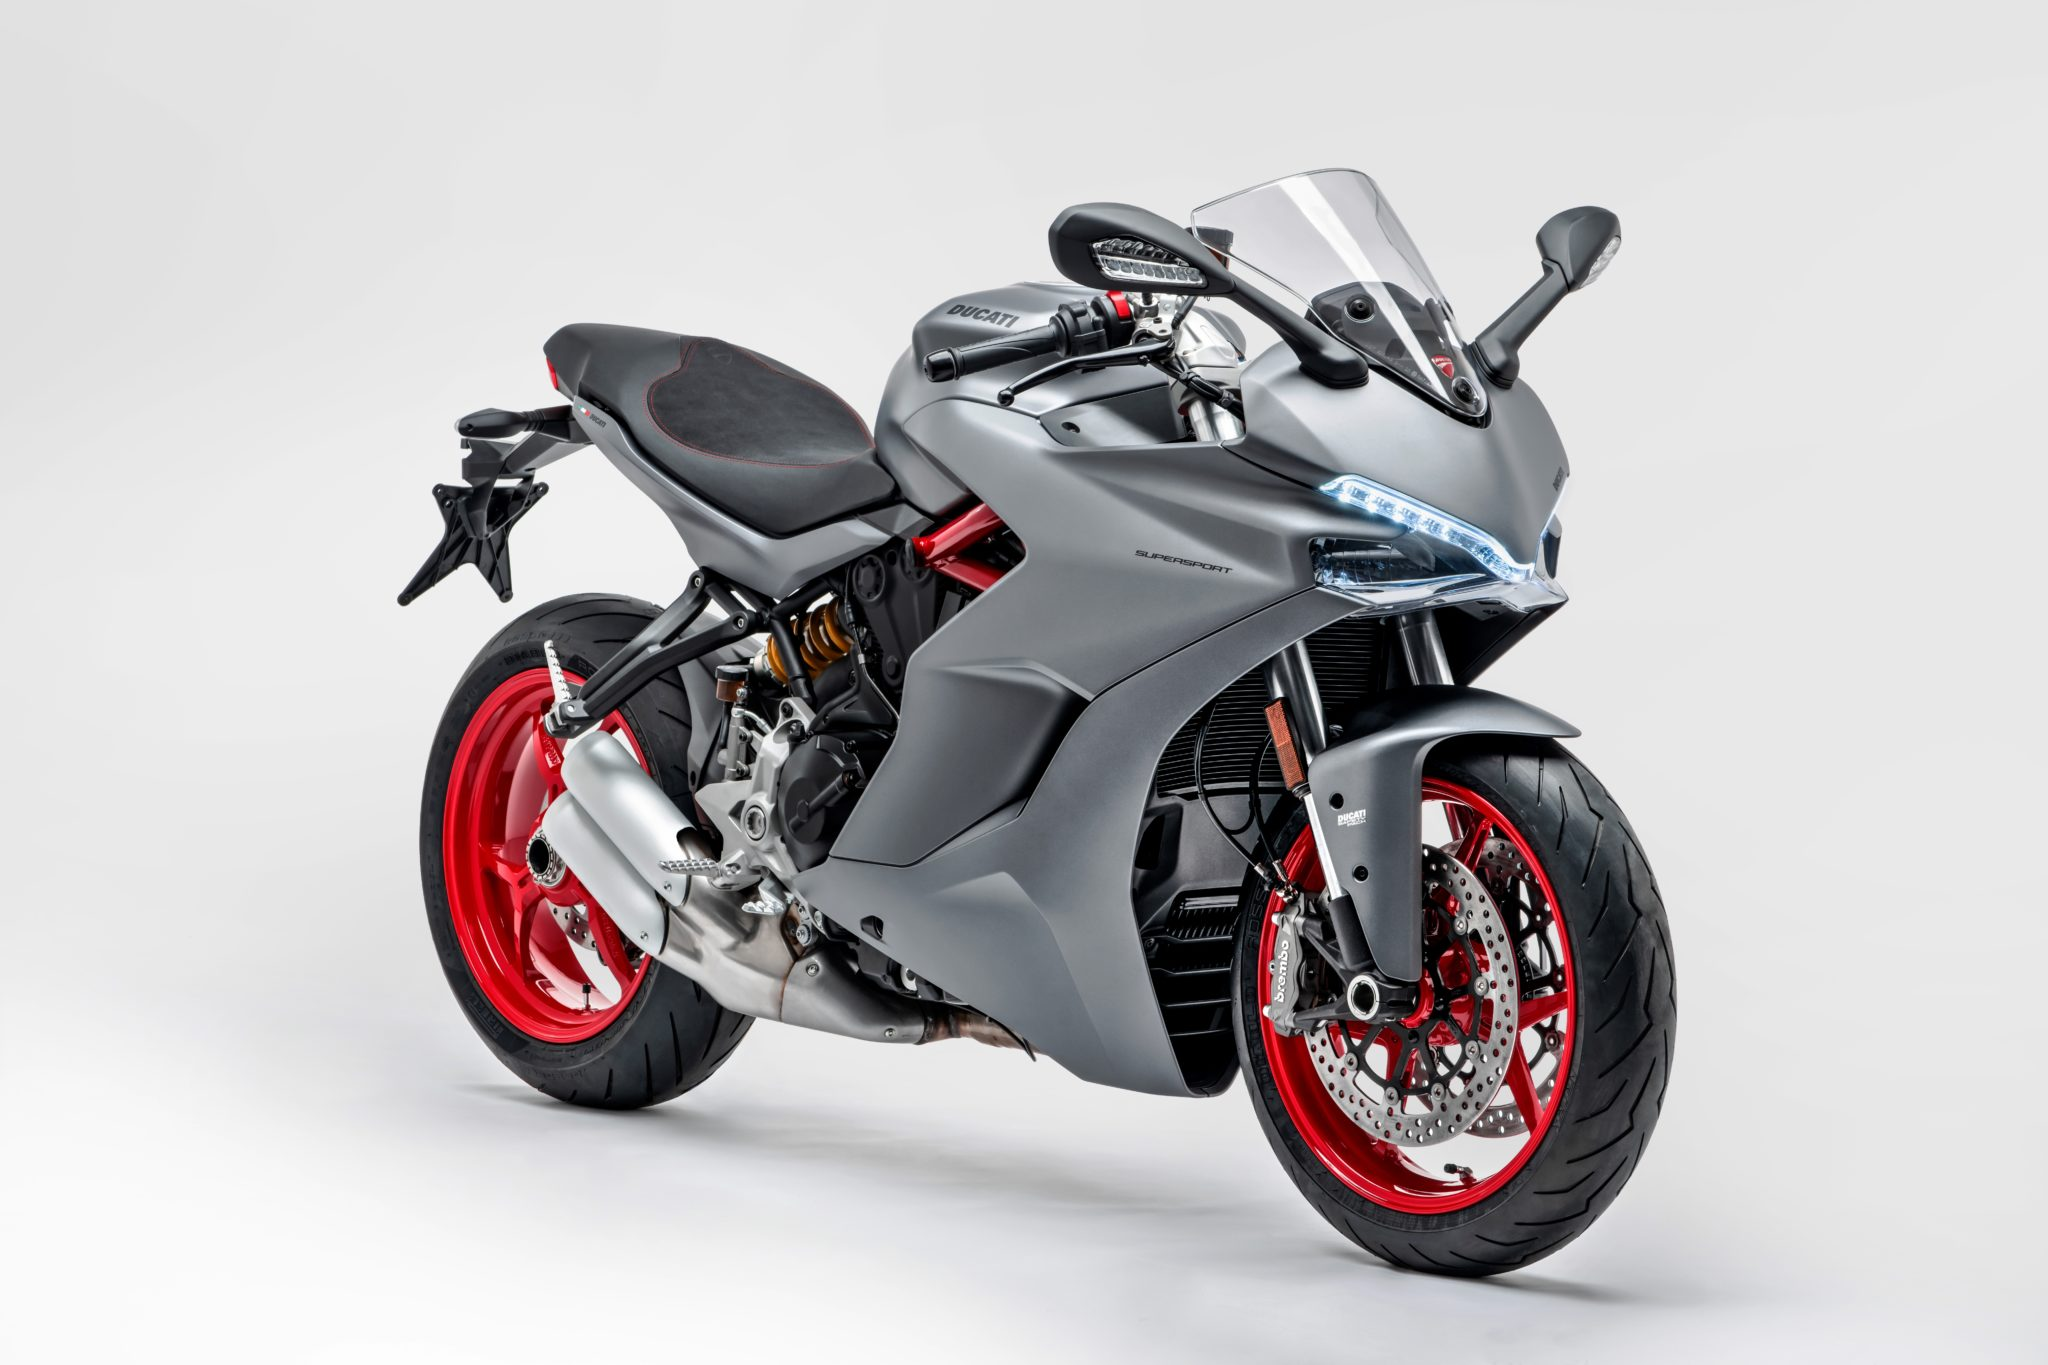 Ducati refreshes the SuperSport with new paint scheme